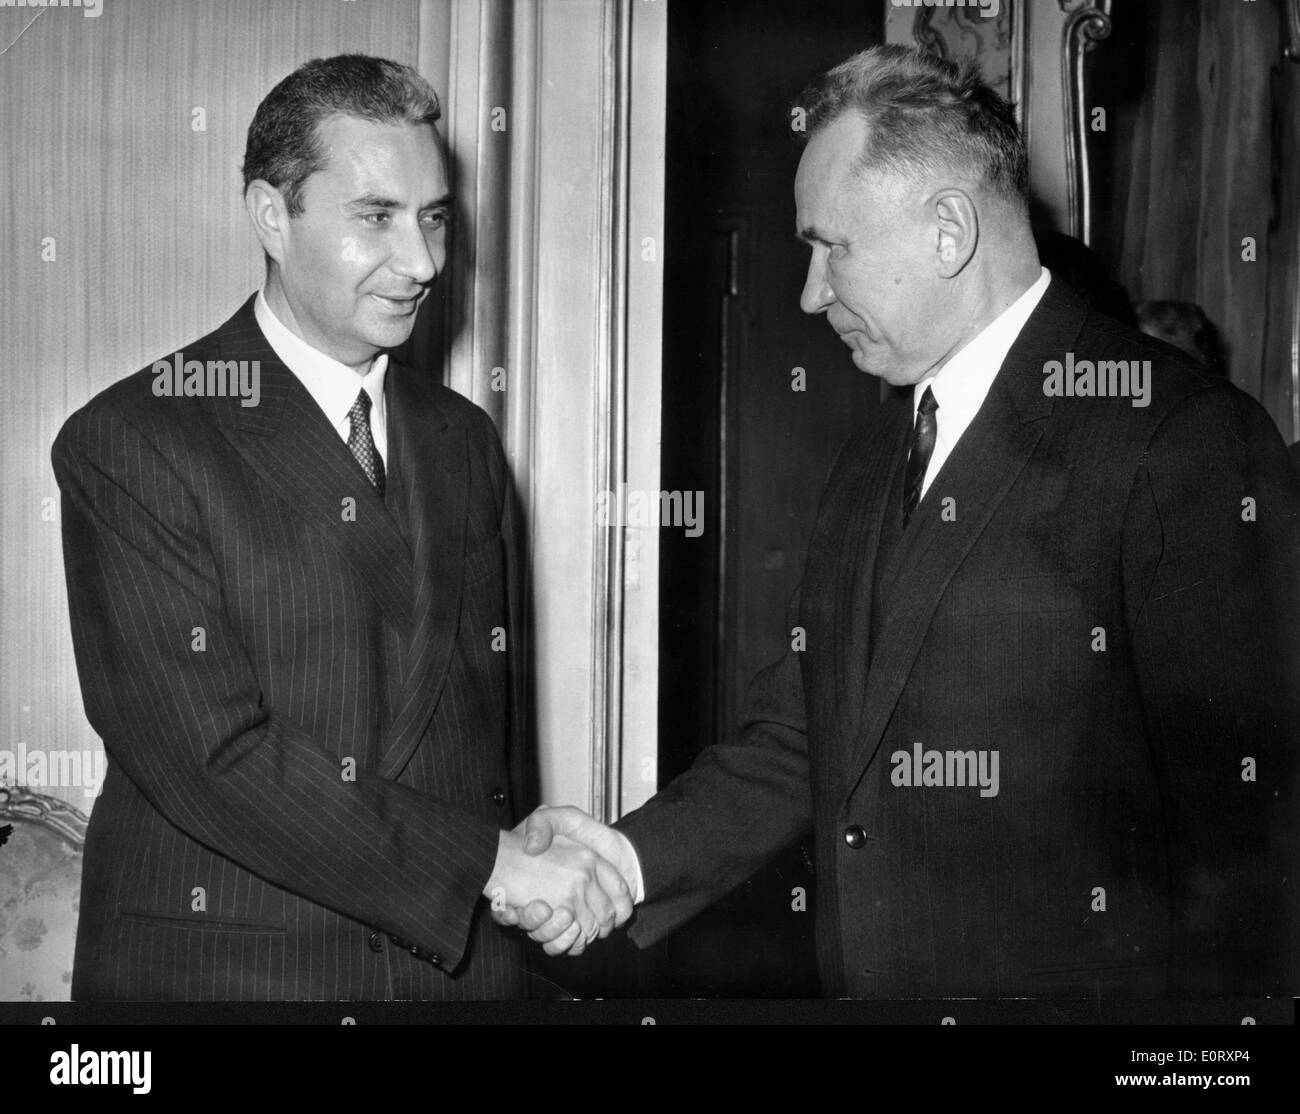 Alexei Kosygin is greeted by Aldo Moro at Palazzo Chigi - Stock Image